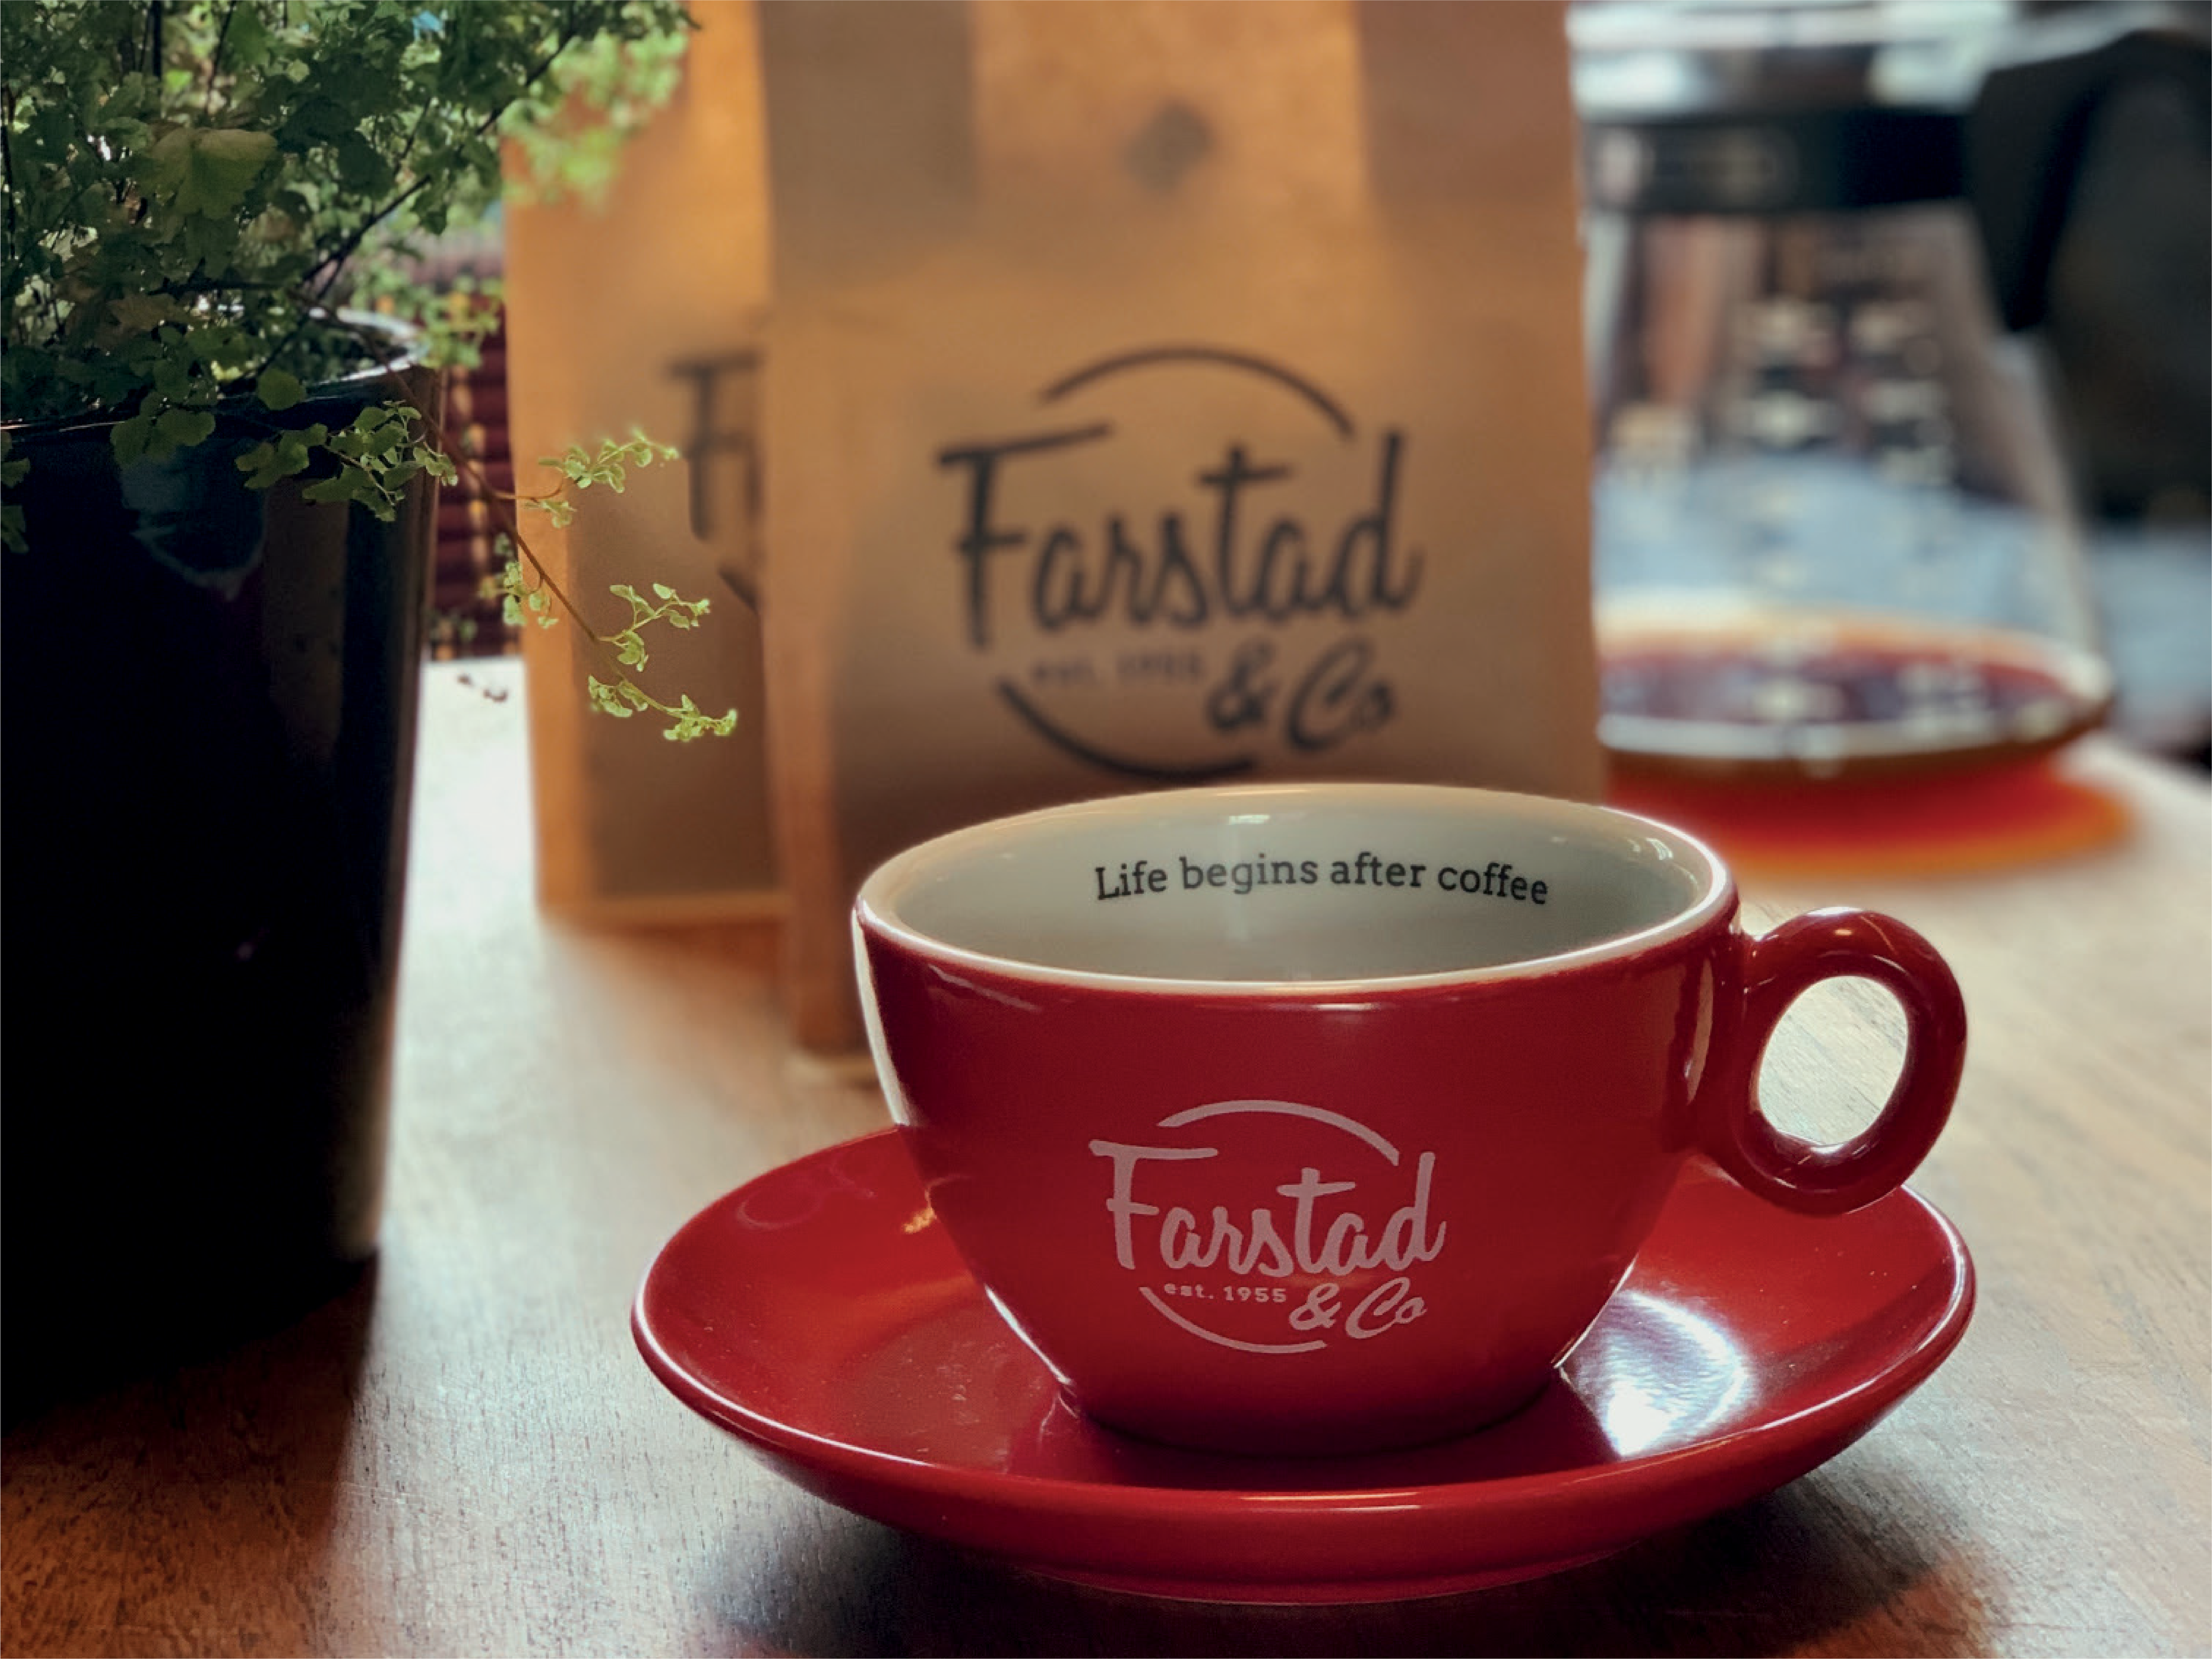 Farstad & Co Coffee and Mug